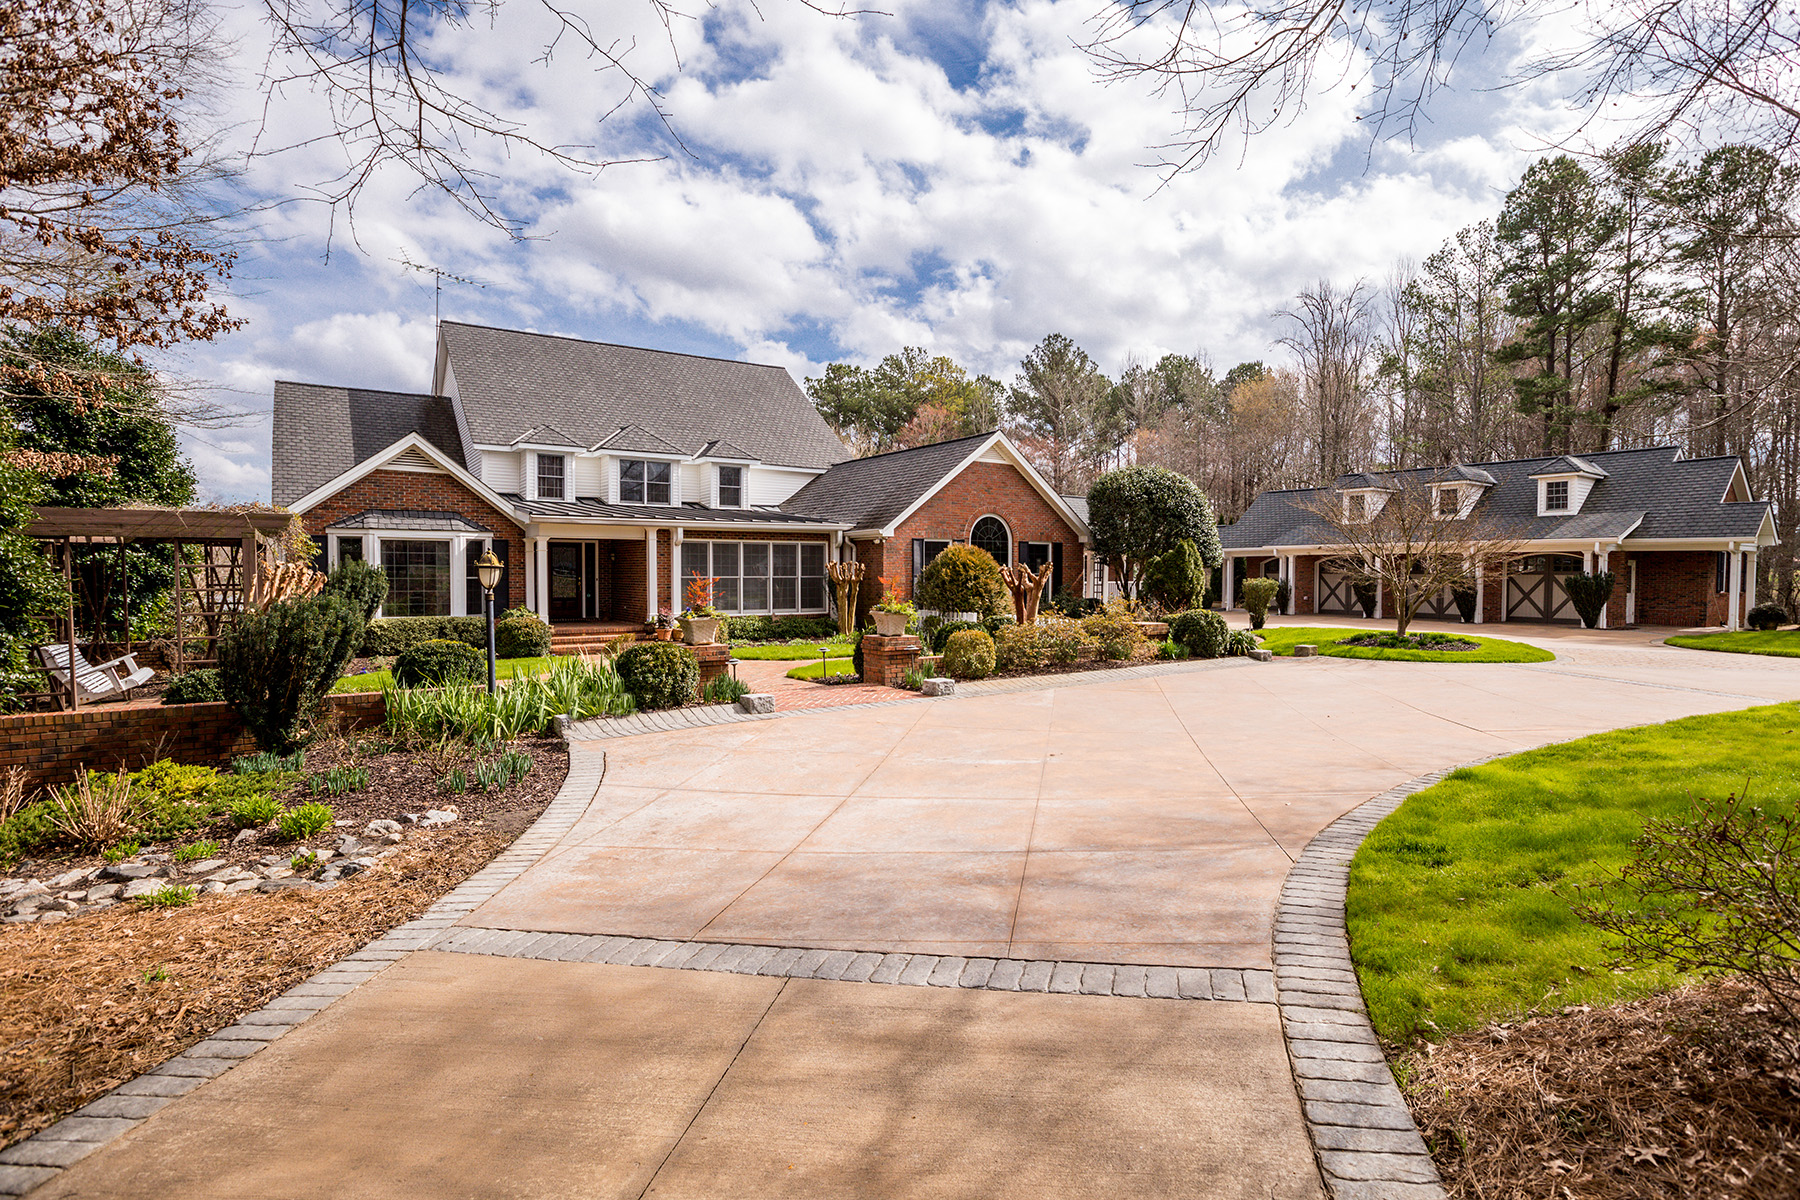 Single Family Homes for Active at Picturesque Gated Property With Rolling Pastures Just South of Atlanta 129 Mattox Rd Newnan, Georgia 30263 United States